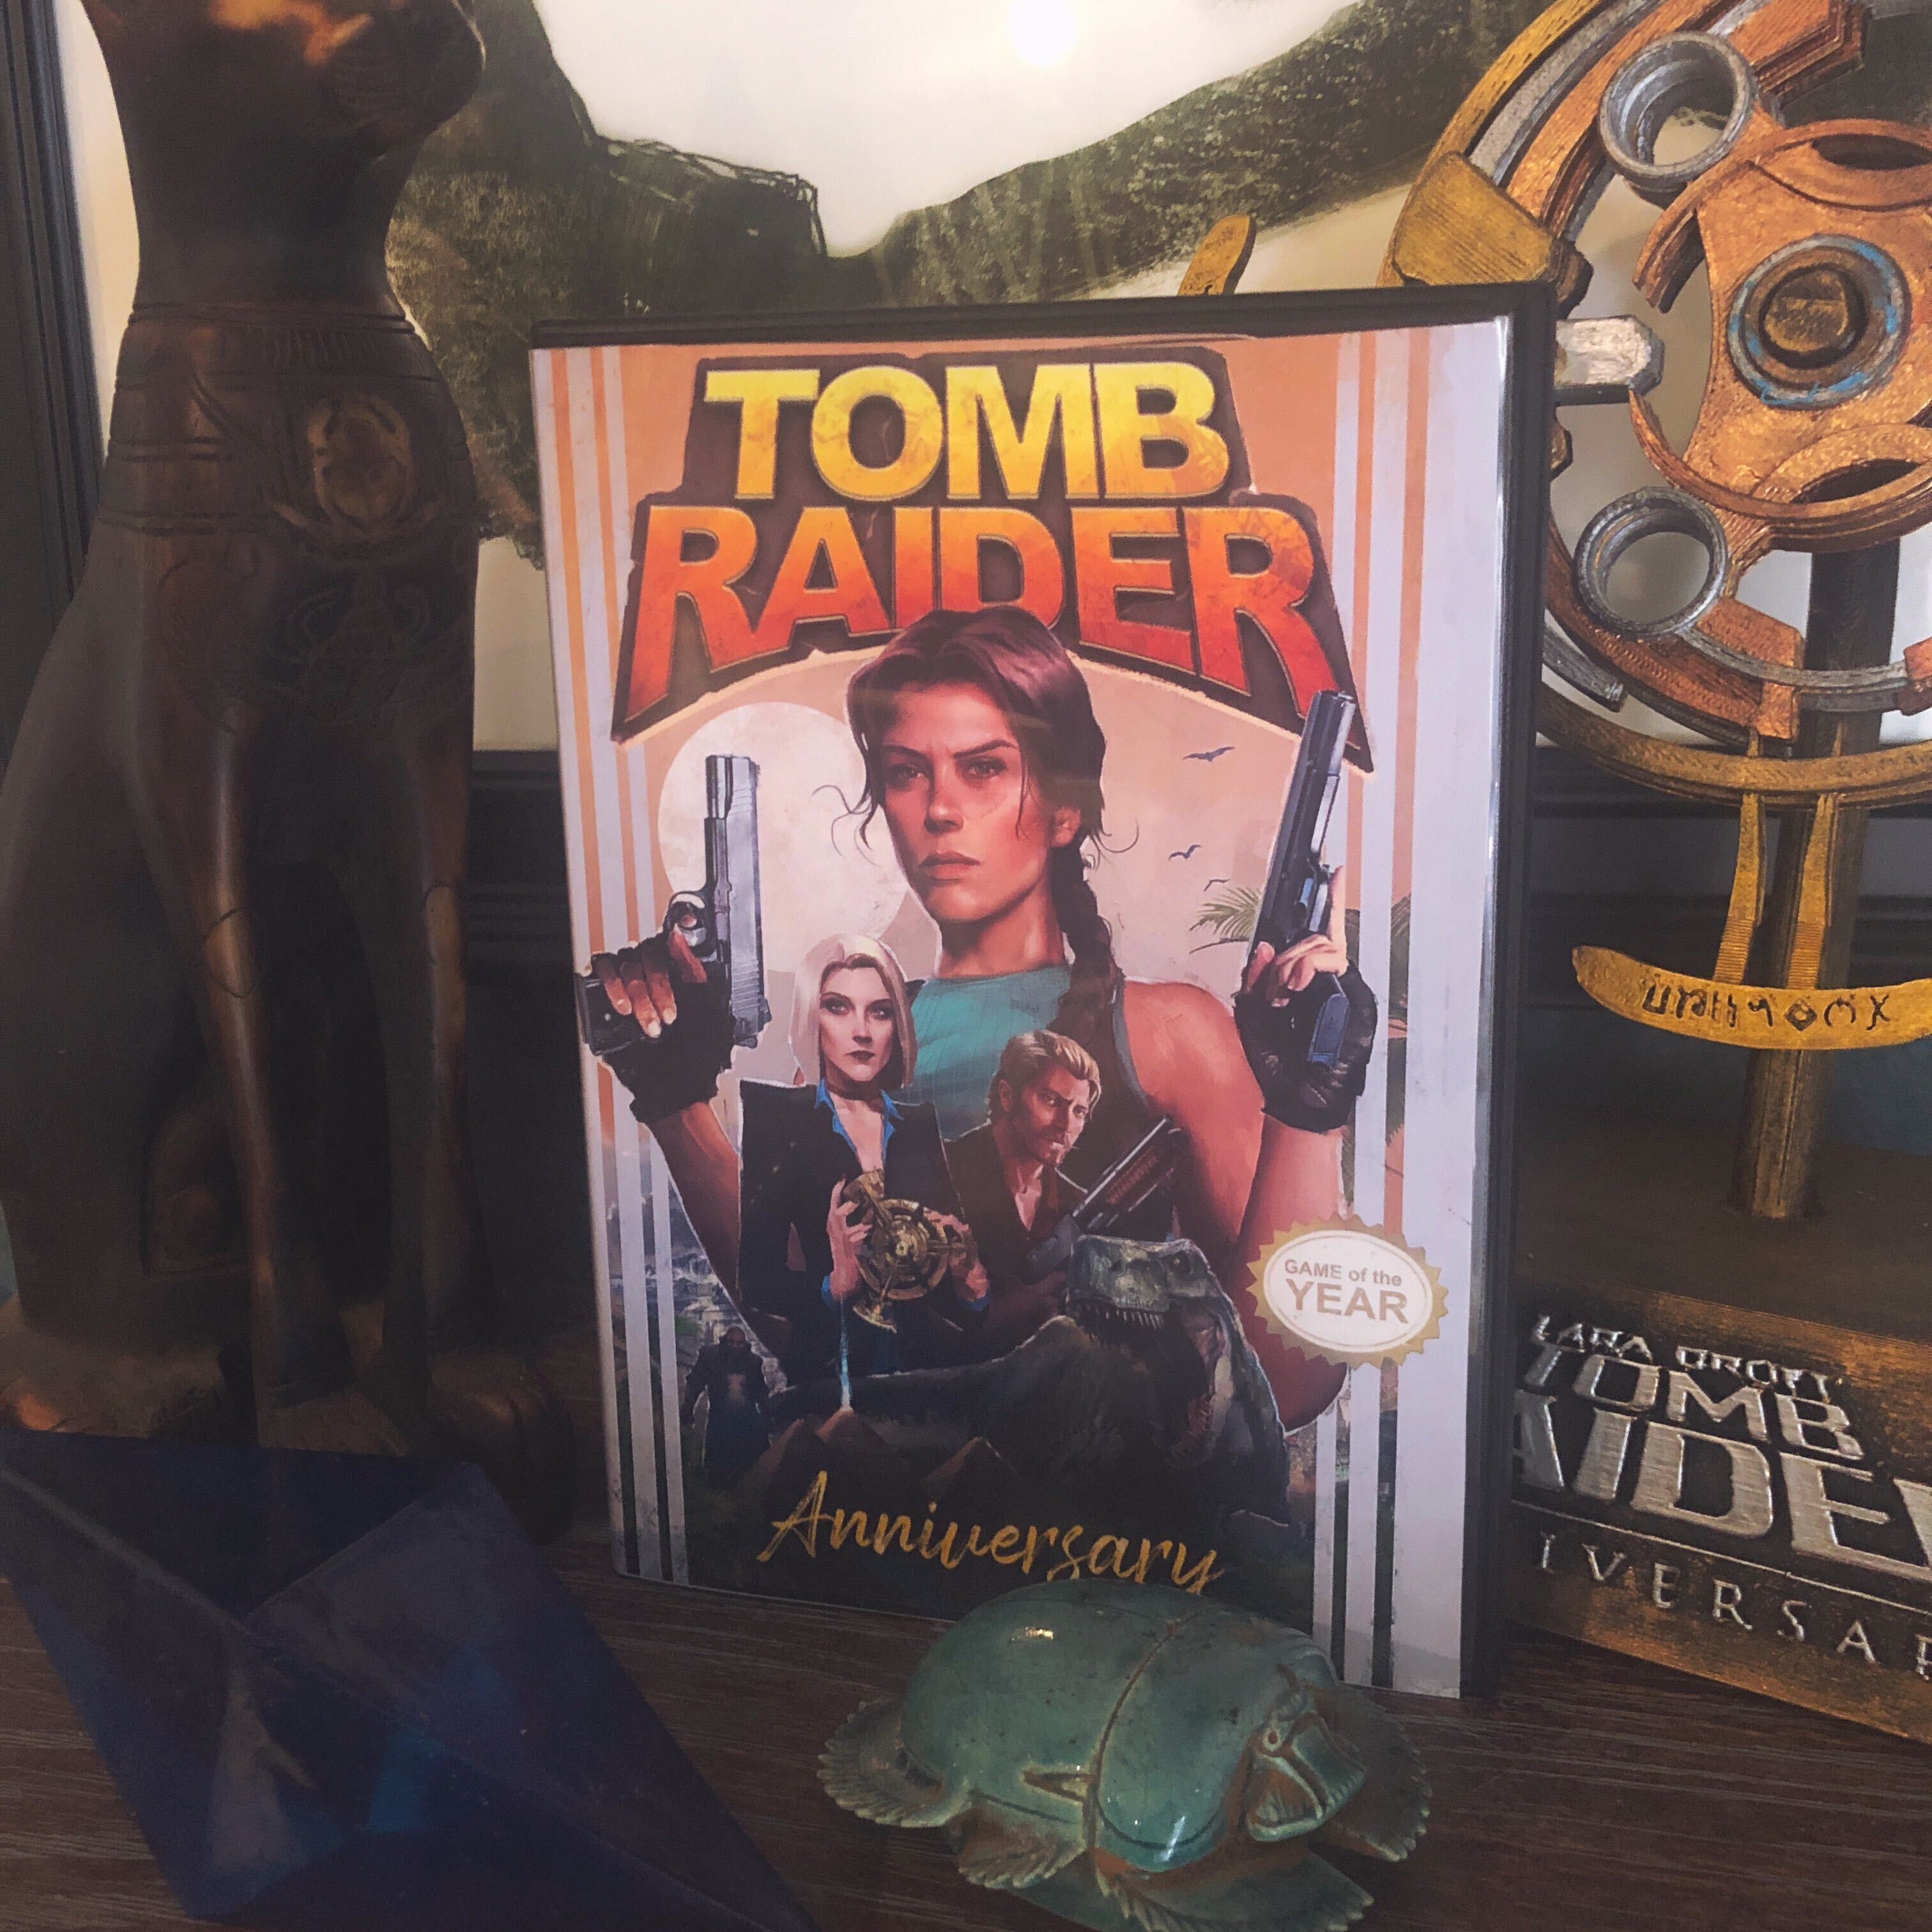 Brenoch's box art reimagining printed and inserted into a PlayStation 2 case. It is surrounded by props like the Anniversary scion